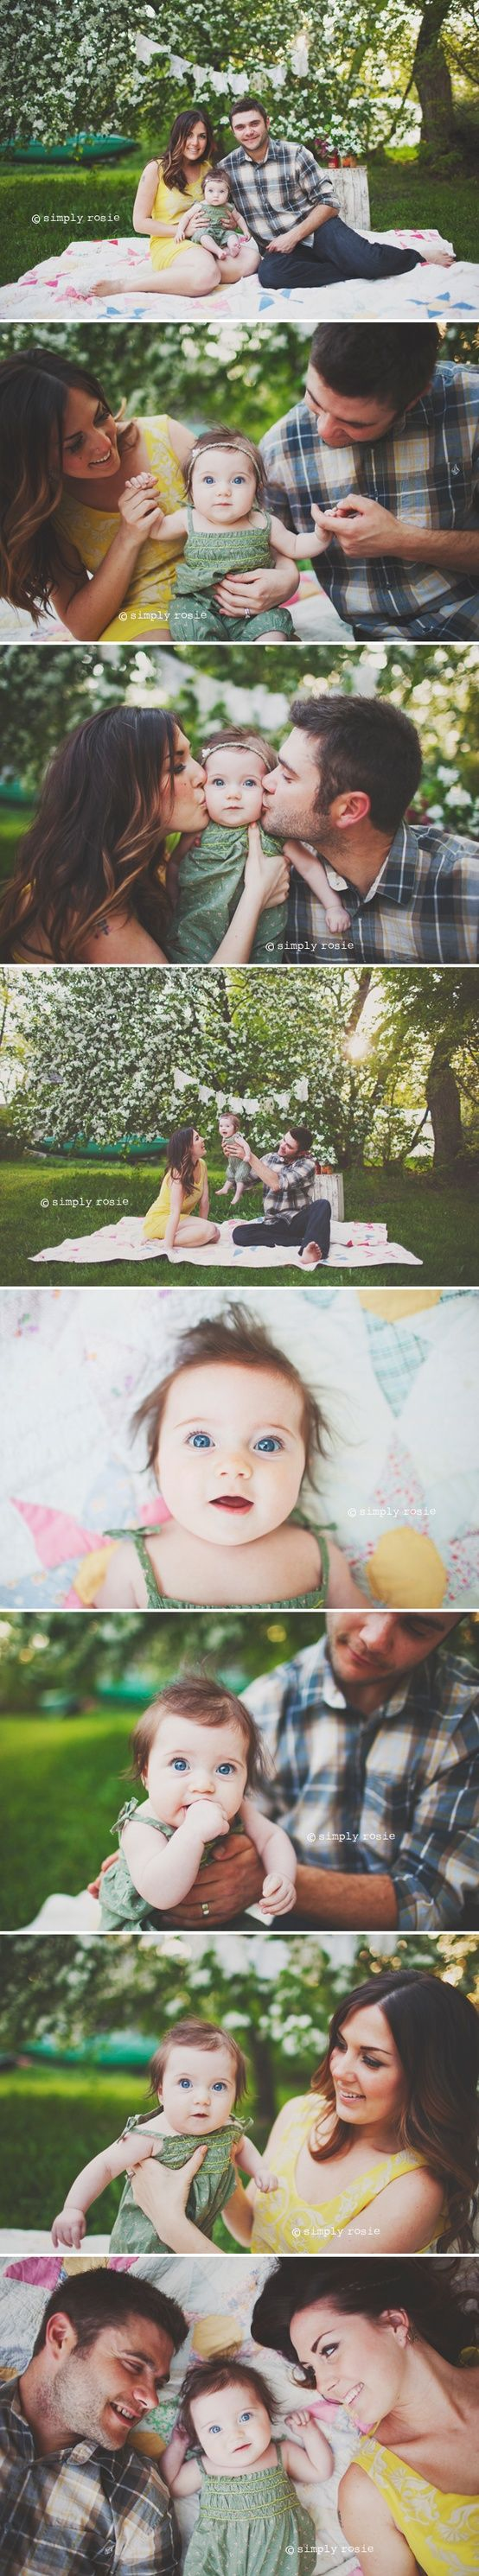 family picnic photo shoot-Great ideas for family of 3. the baby's eyes are so blue!!